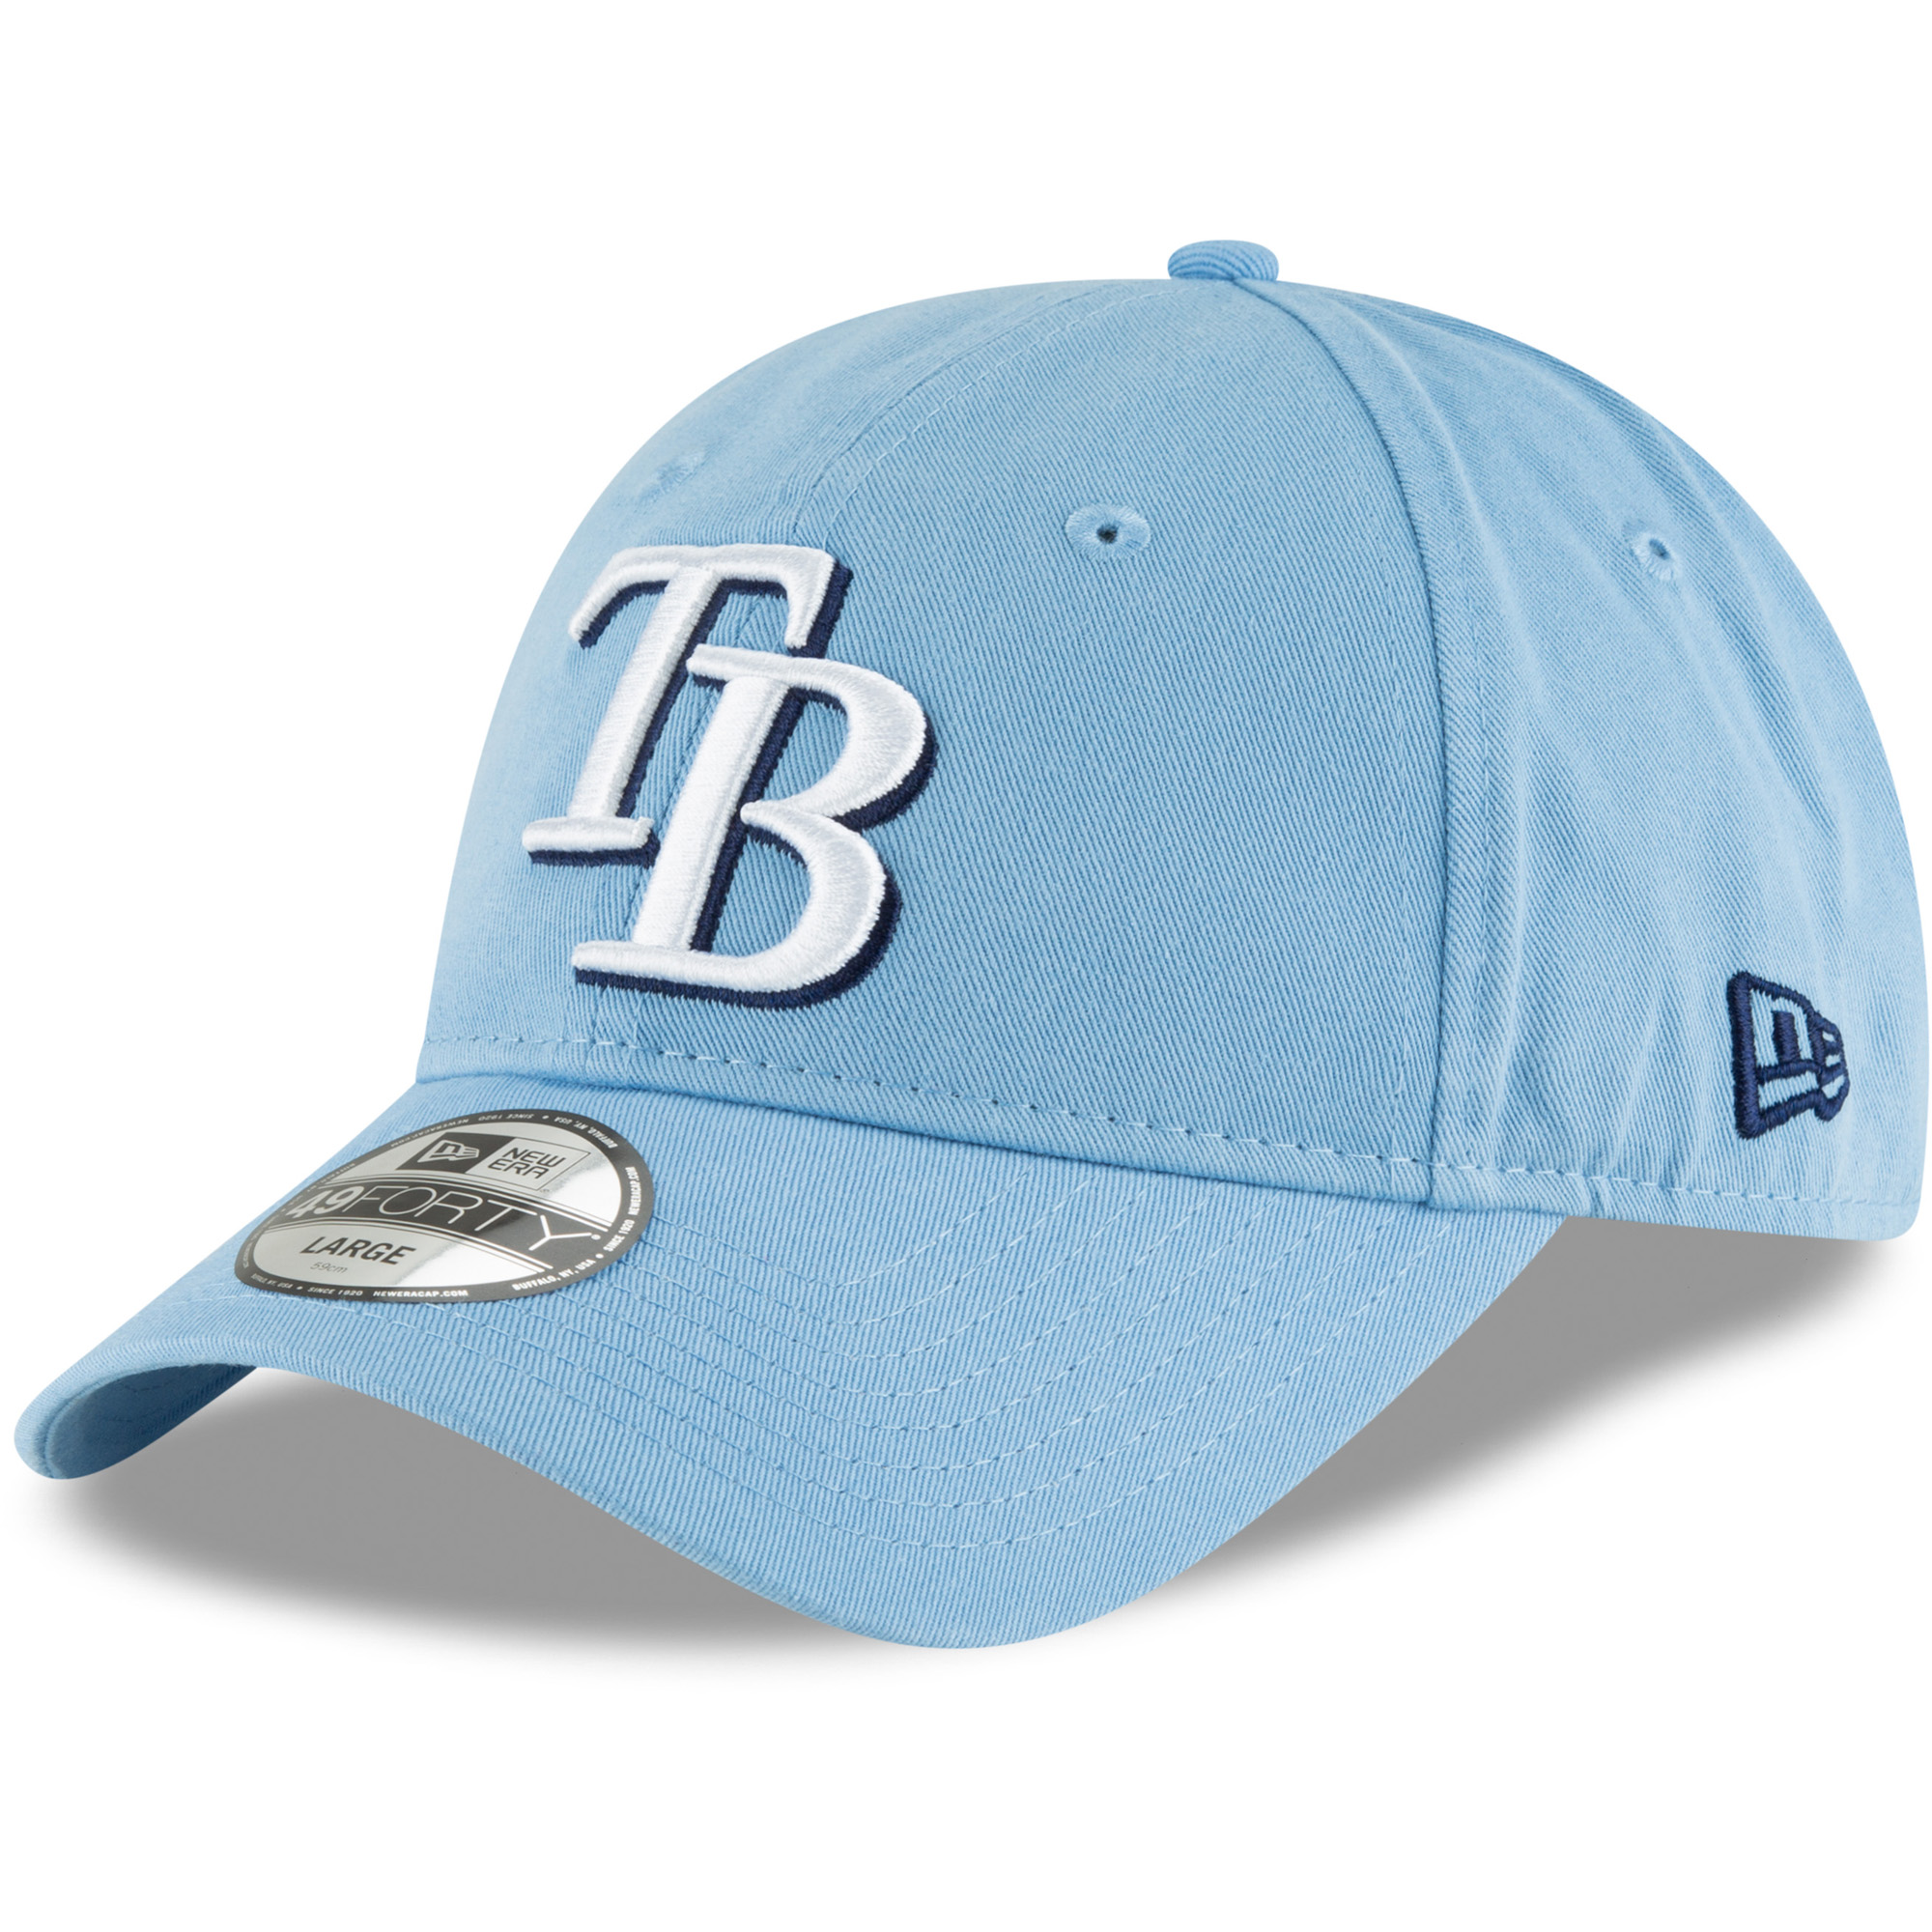 Tampa Bay Rays New Era Batting Practice Core Fit Replica 49FORTY Fitted Hat - Light Blue